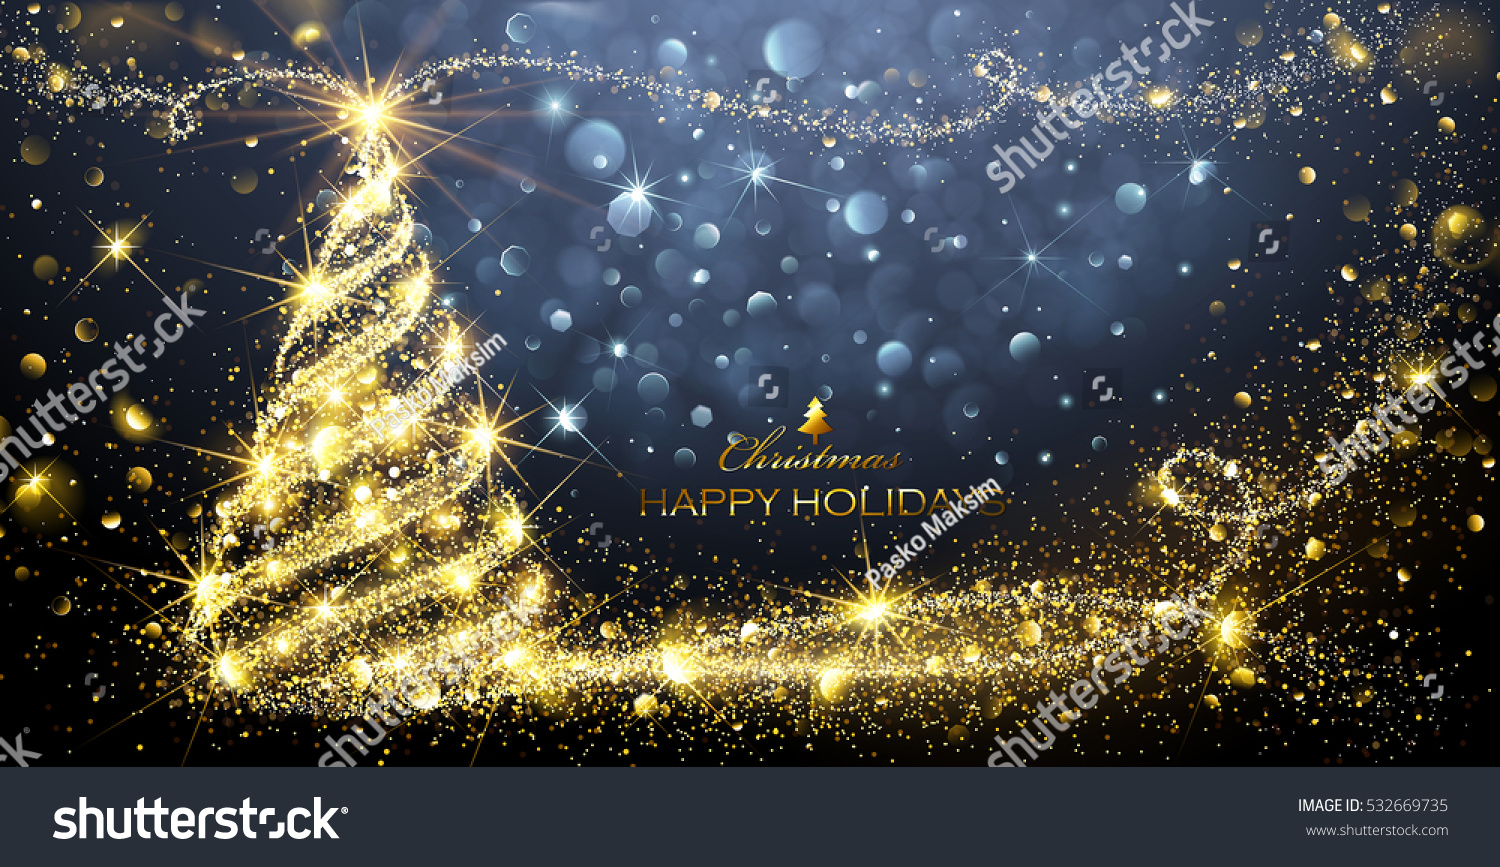 christmas card with magic tree and flickering lights vector illustration